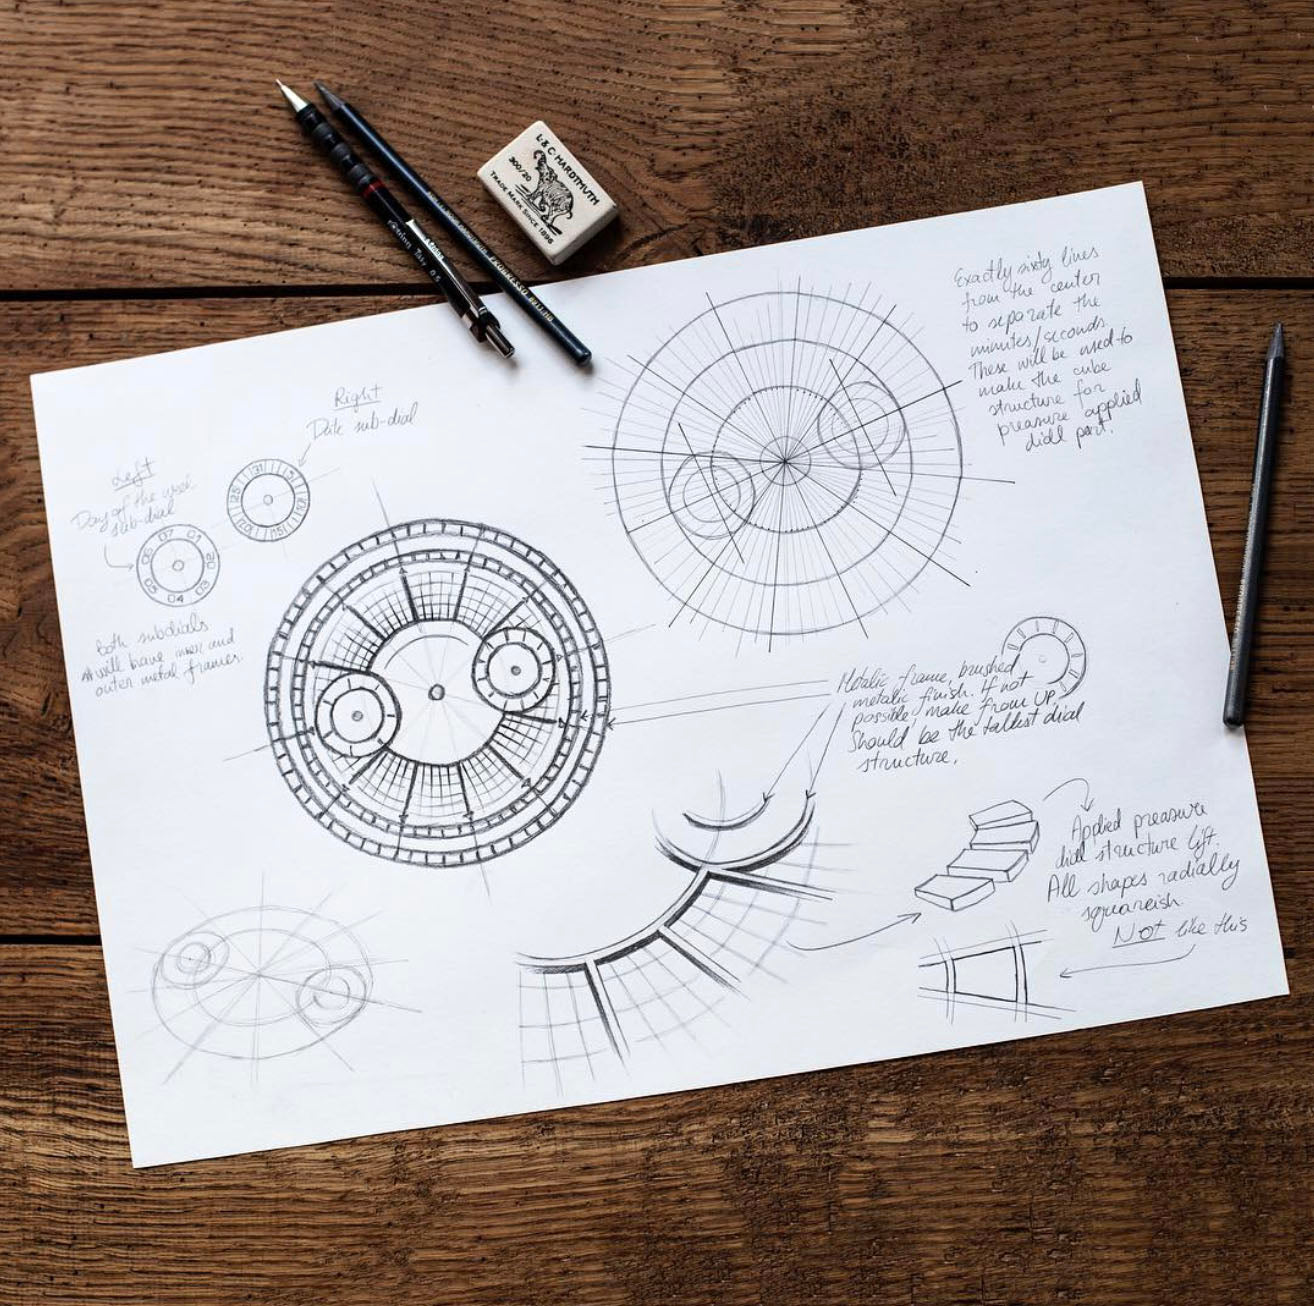 Designing watches